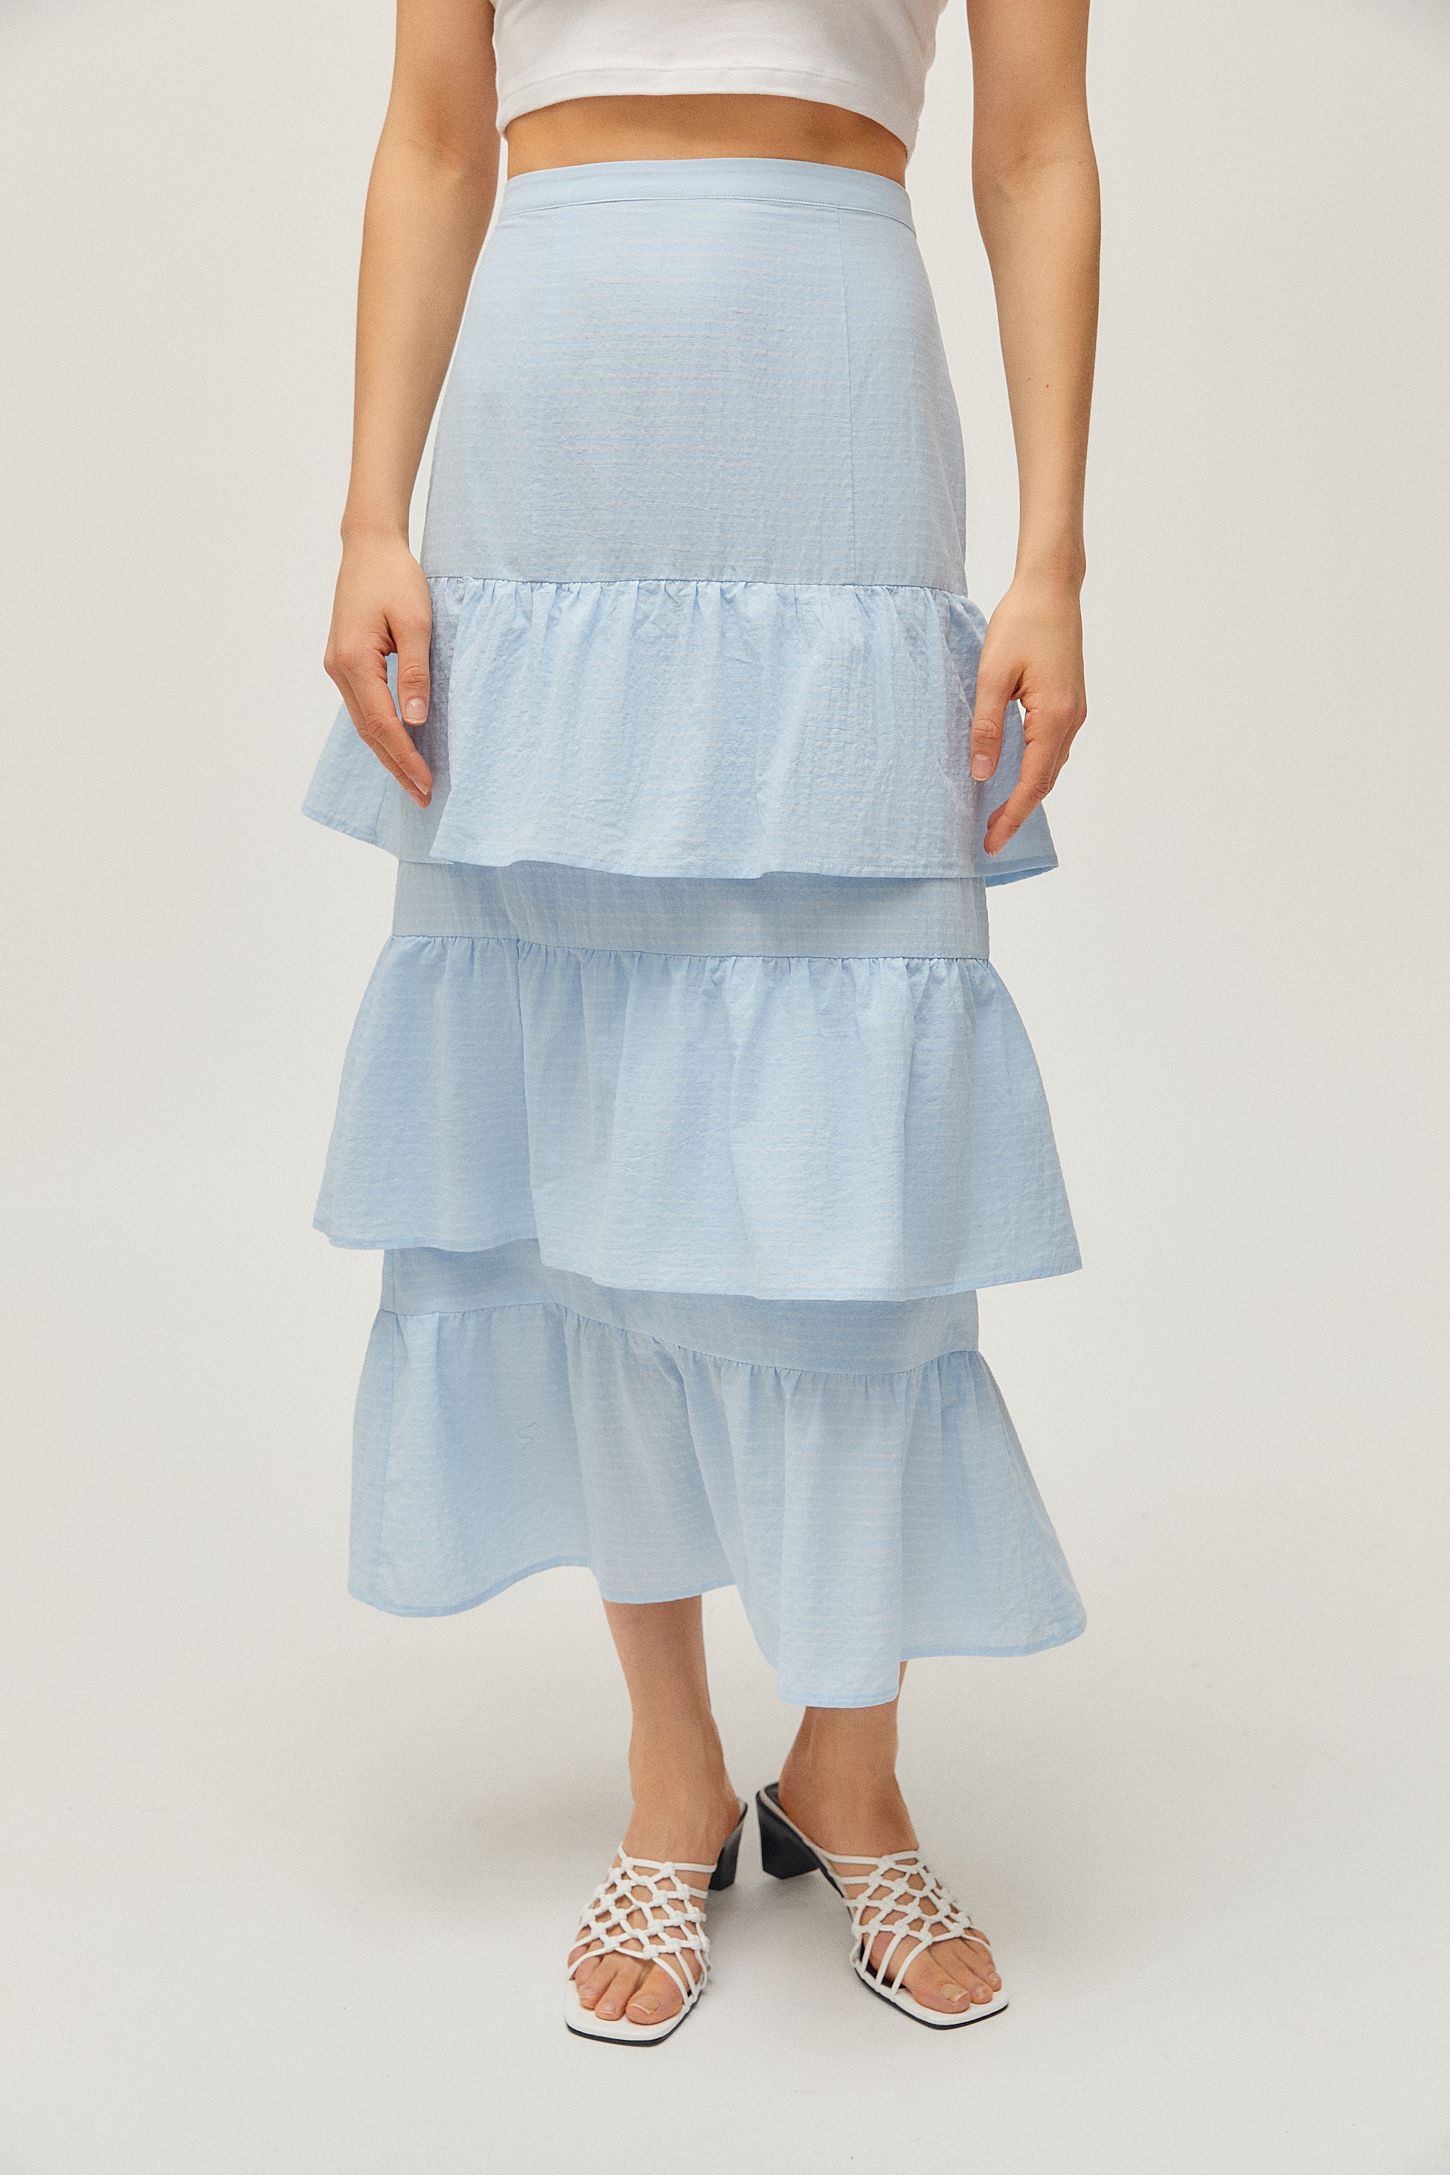 eadb86ac0 Capulet Lalaine Tiered Ruffle Maxi Skirt | Urban Outfitters